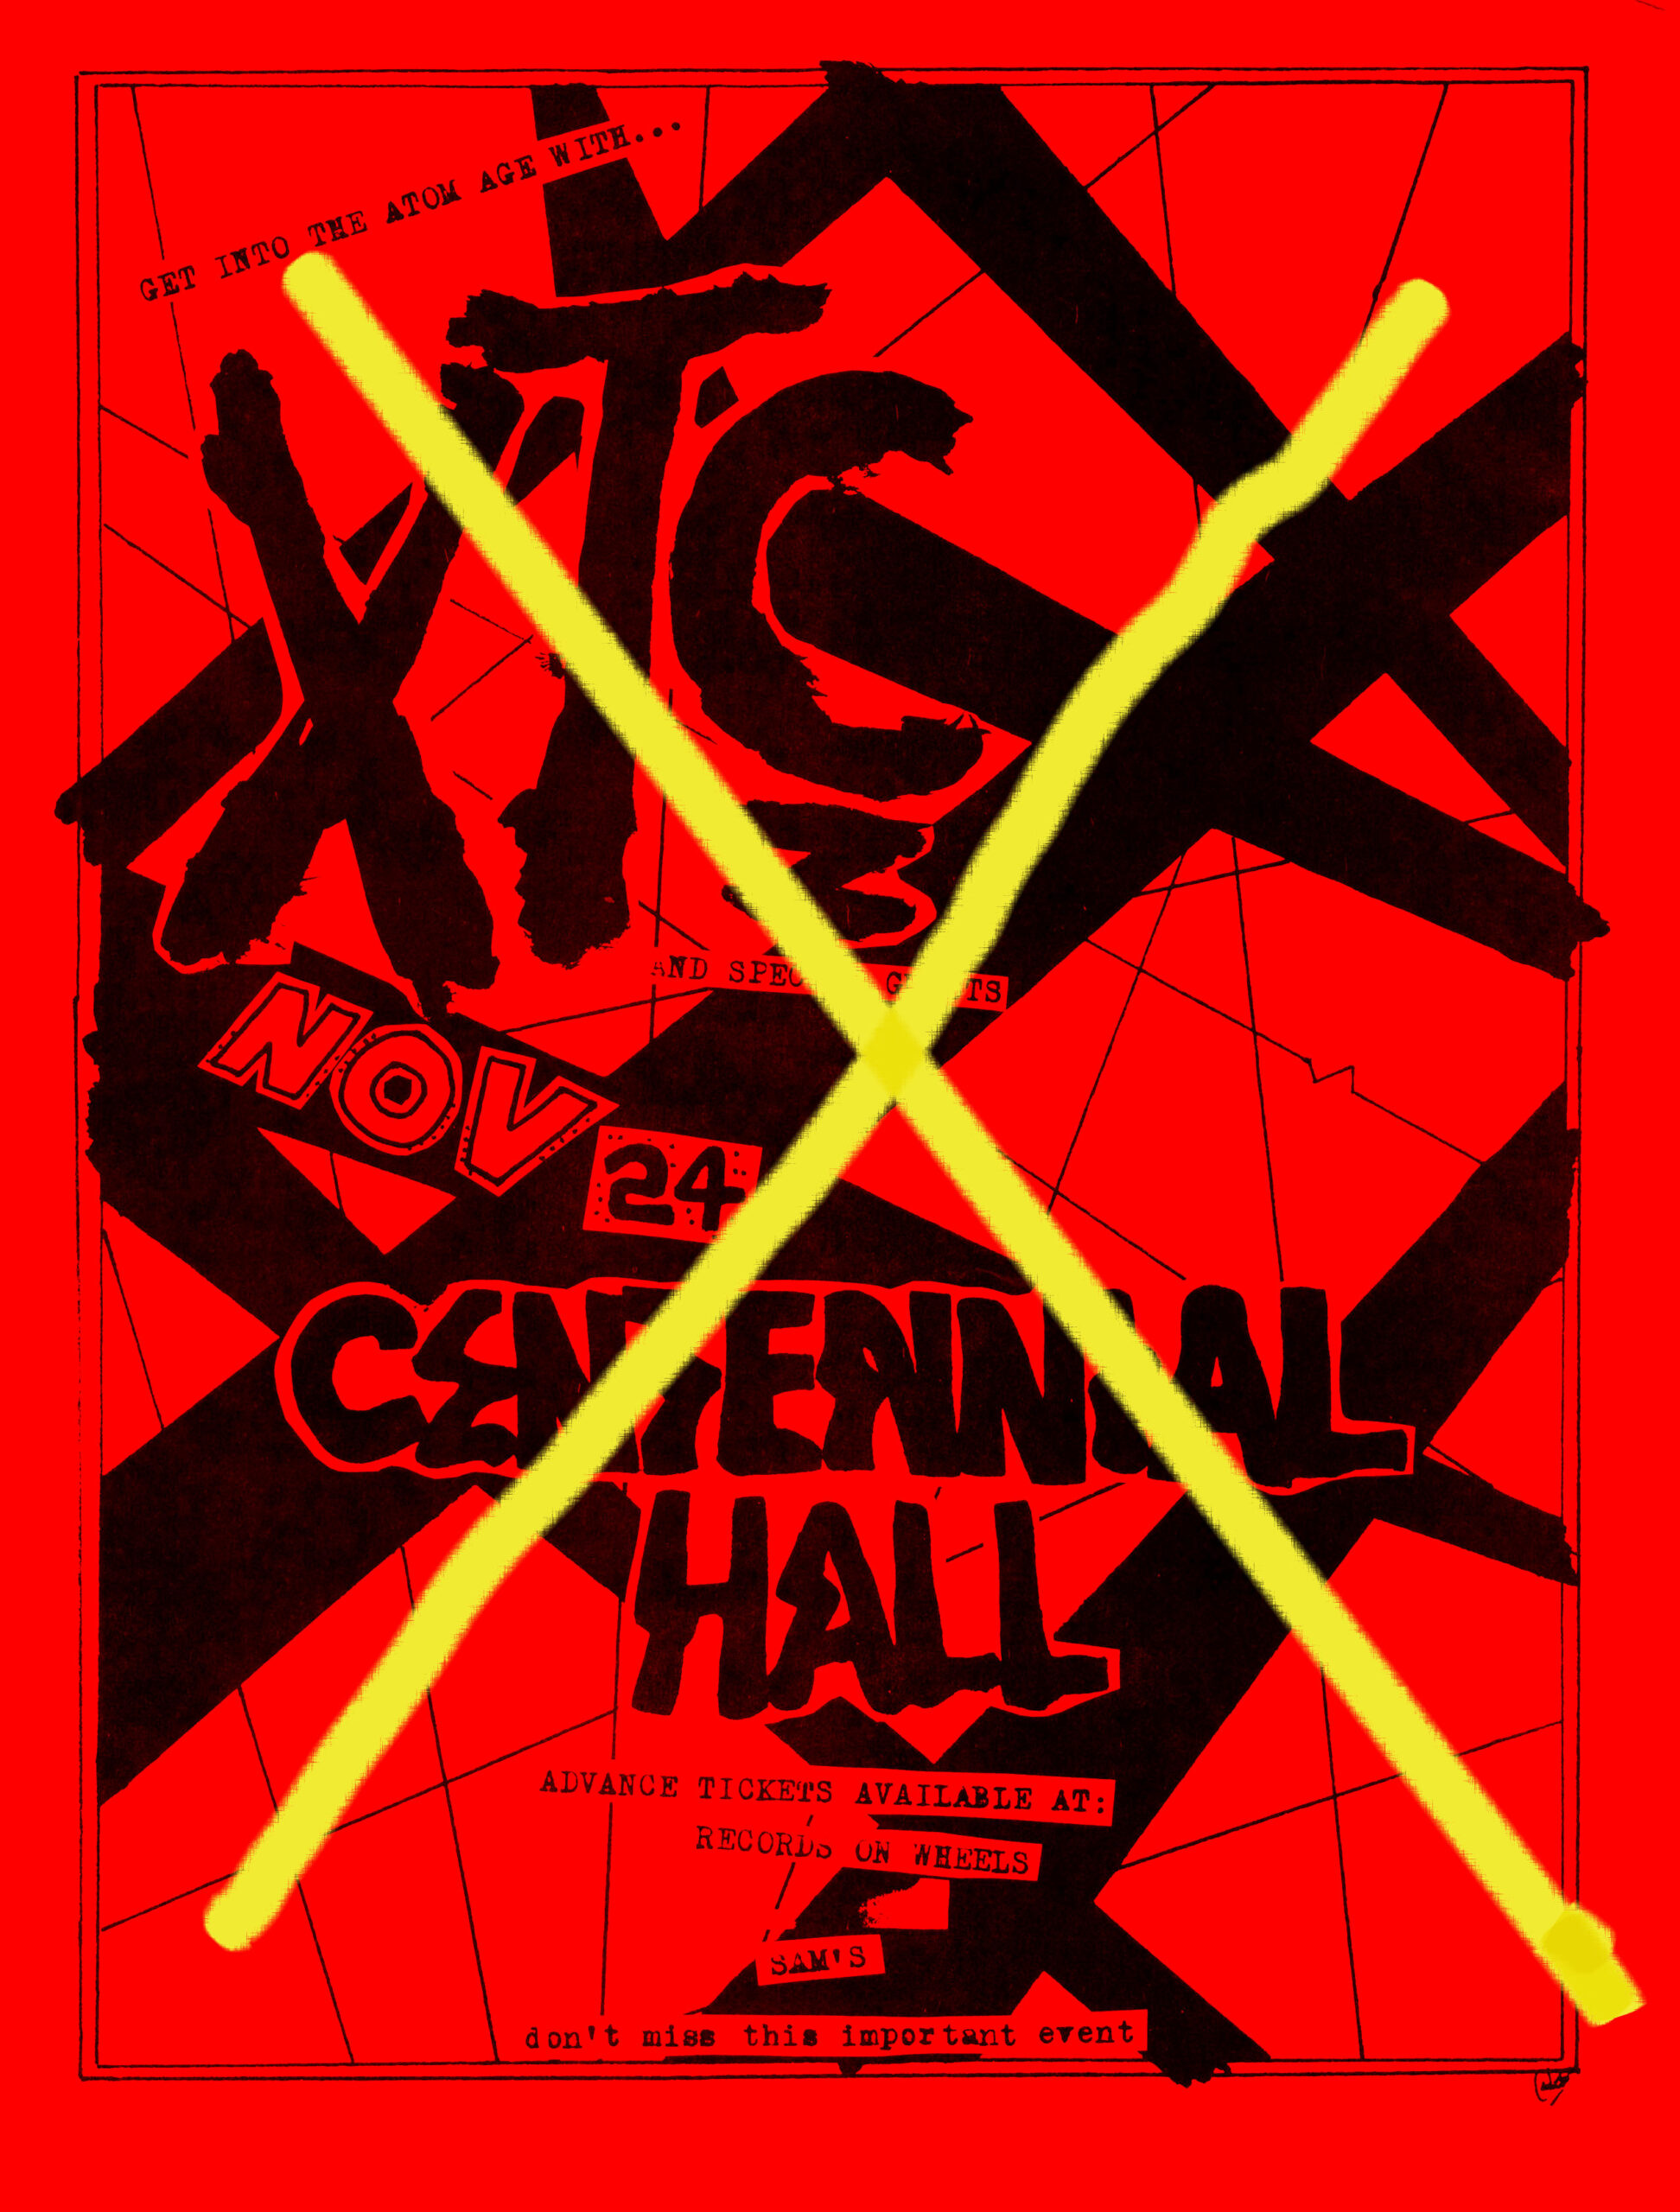 xtc handbill cancelled show london ontario november 24 1980 mylifeinconcert.com RED